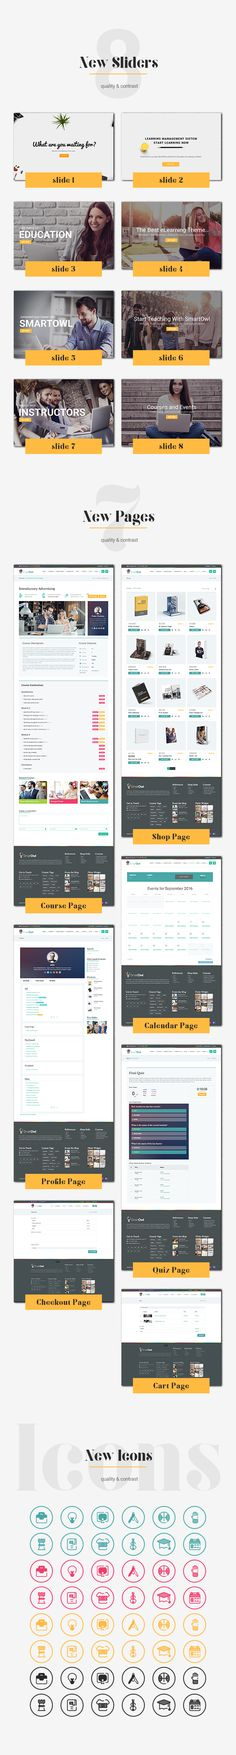 LMS / Course / eLearning / Education / Events / School / University / Academy WordPress Theme by modeltheme Wordpress Premium, Singles Events, Event Page, Video Background, Event Calendar, Wordpress Theme, University, Management, Cases